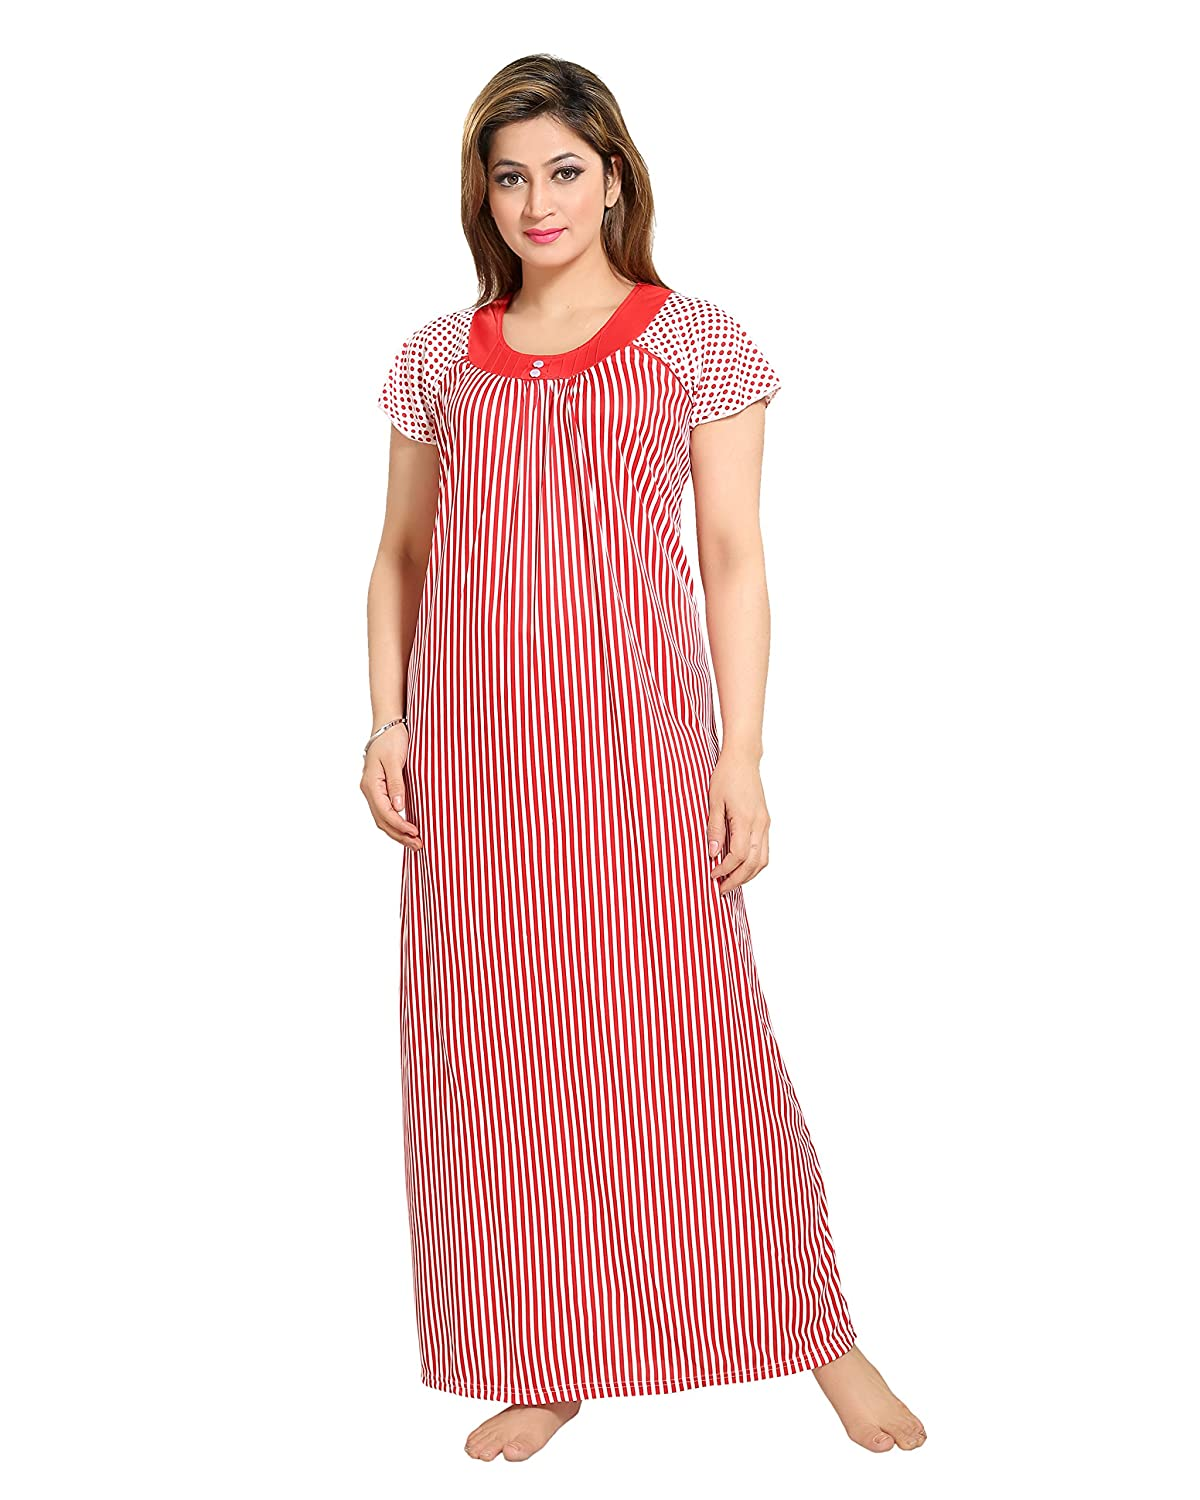 TUCUTE Women Beautiful Line Print Nighty Night Gown Night Dress (Red) (Free  Size) D.No.1280  Amazon.in  Clothing   Accessories 579527241